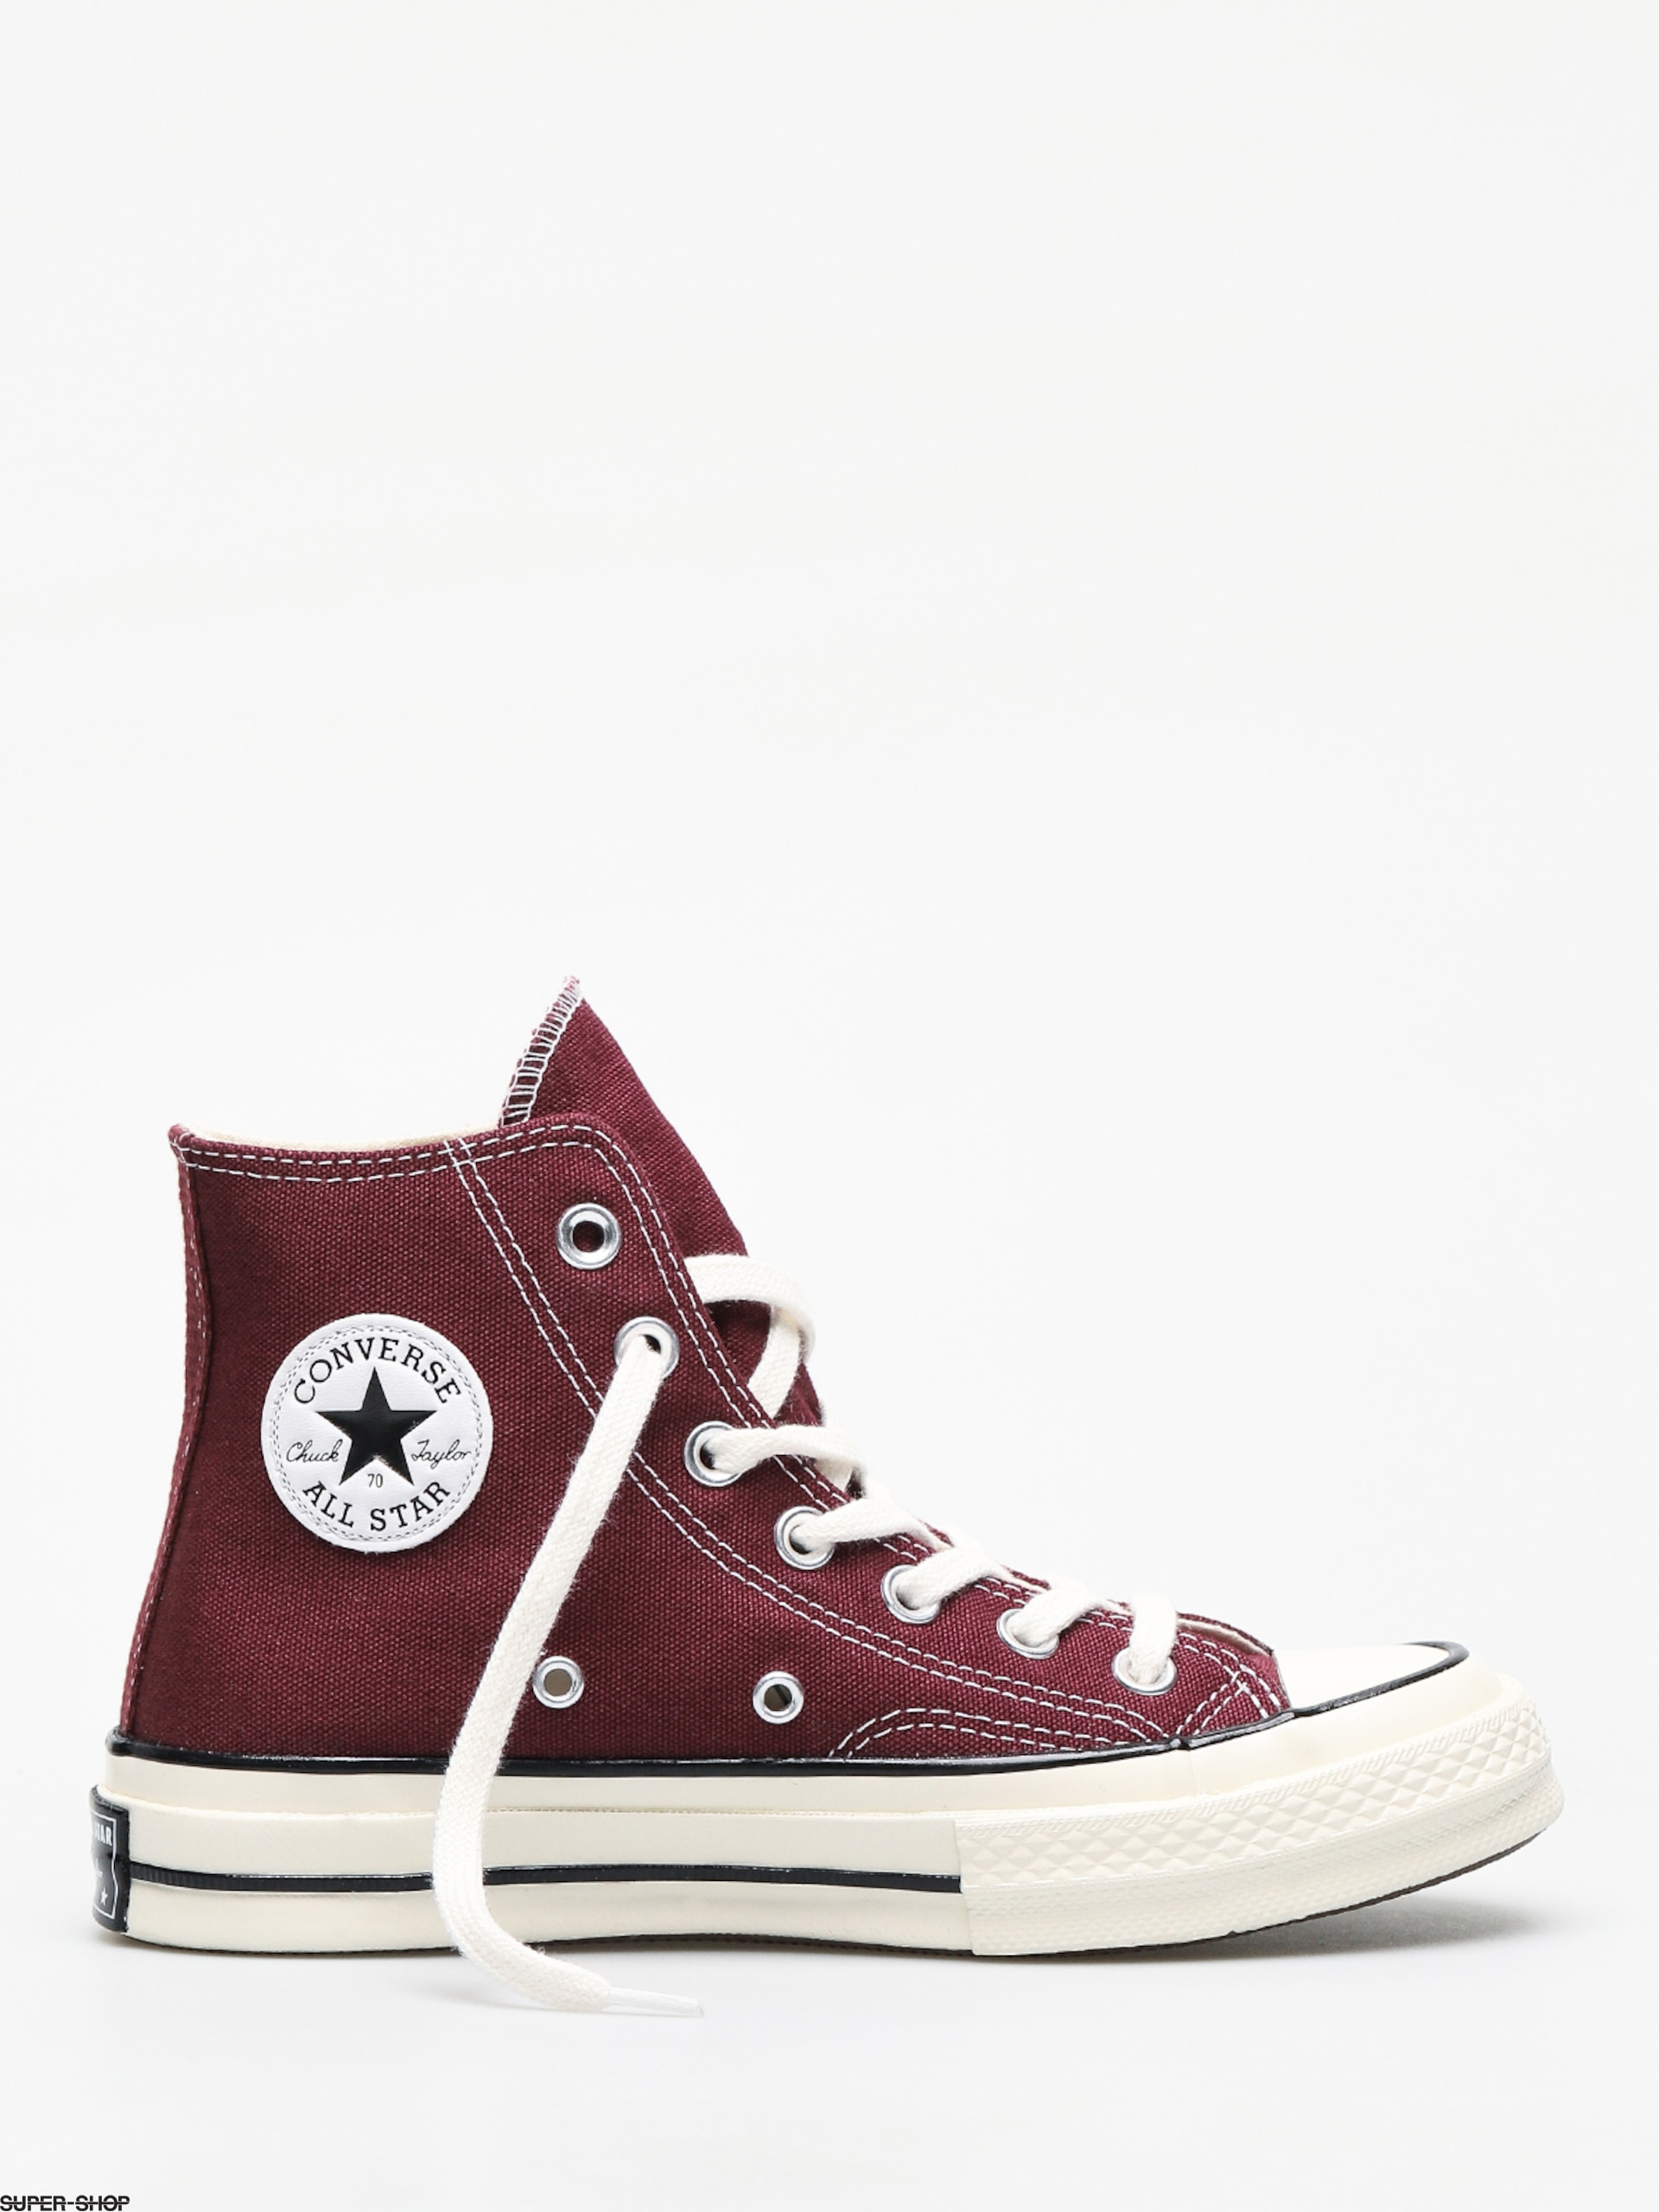 Maroon Burgandy Smll Child 8 7 Converse CT AS HI Top Toddler Shoes US Size 6